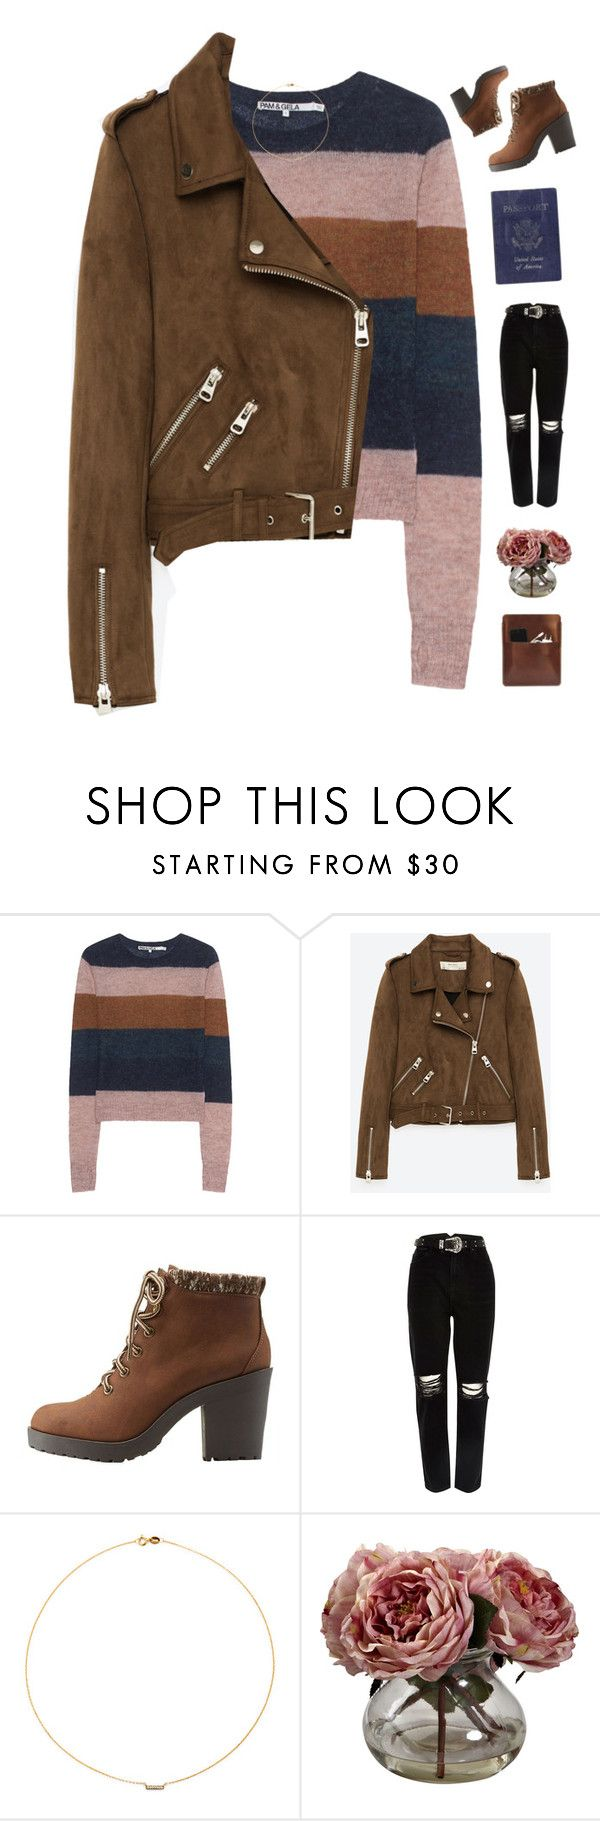 """Snowy days ☃️"" by genesis129 on Polyvore featuring Pam & Gela, Freebird, Charlotte Russe, River Island, Sole Society, Passport, Nearly Natural, Palila and vintage"